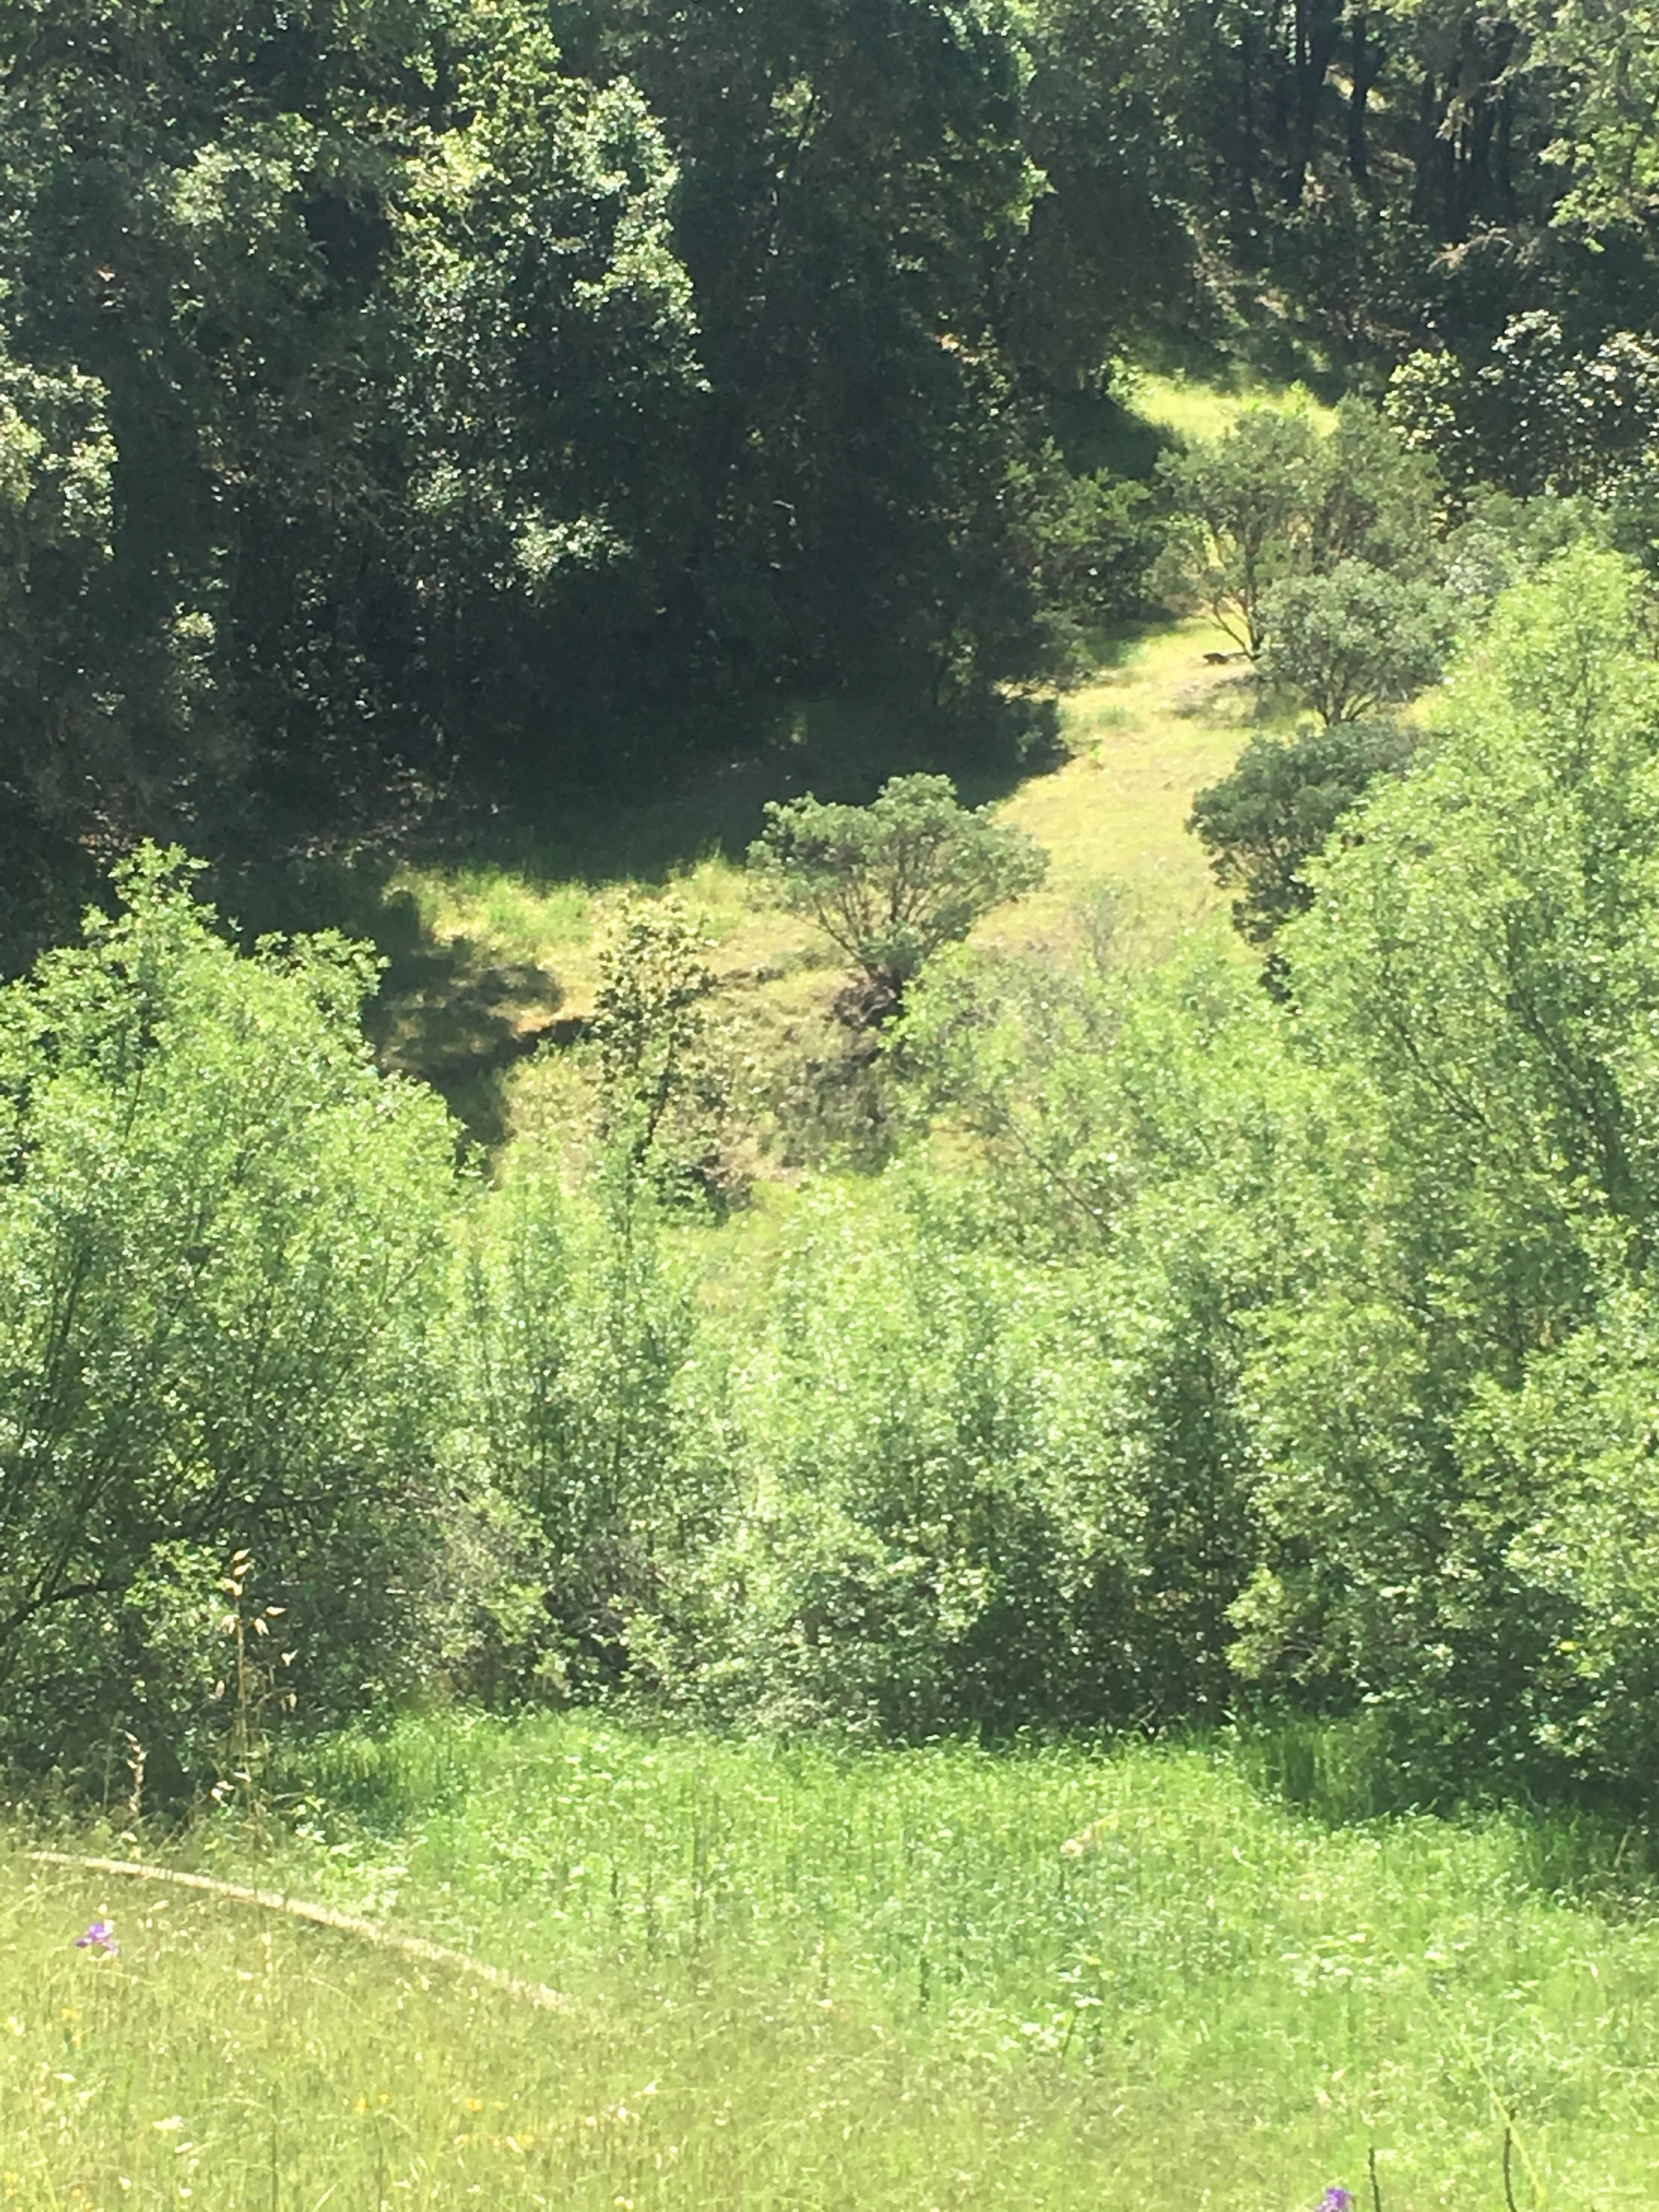 Green meadows and hiking trails on listing in Yorkville.